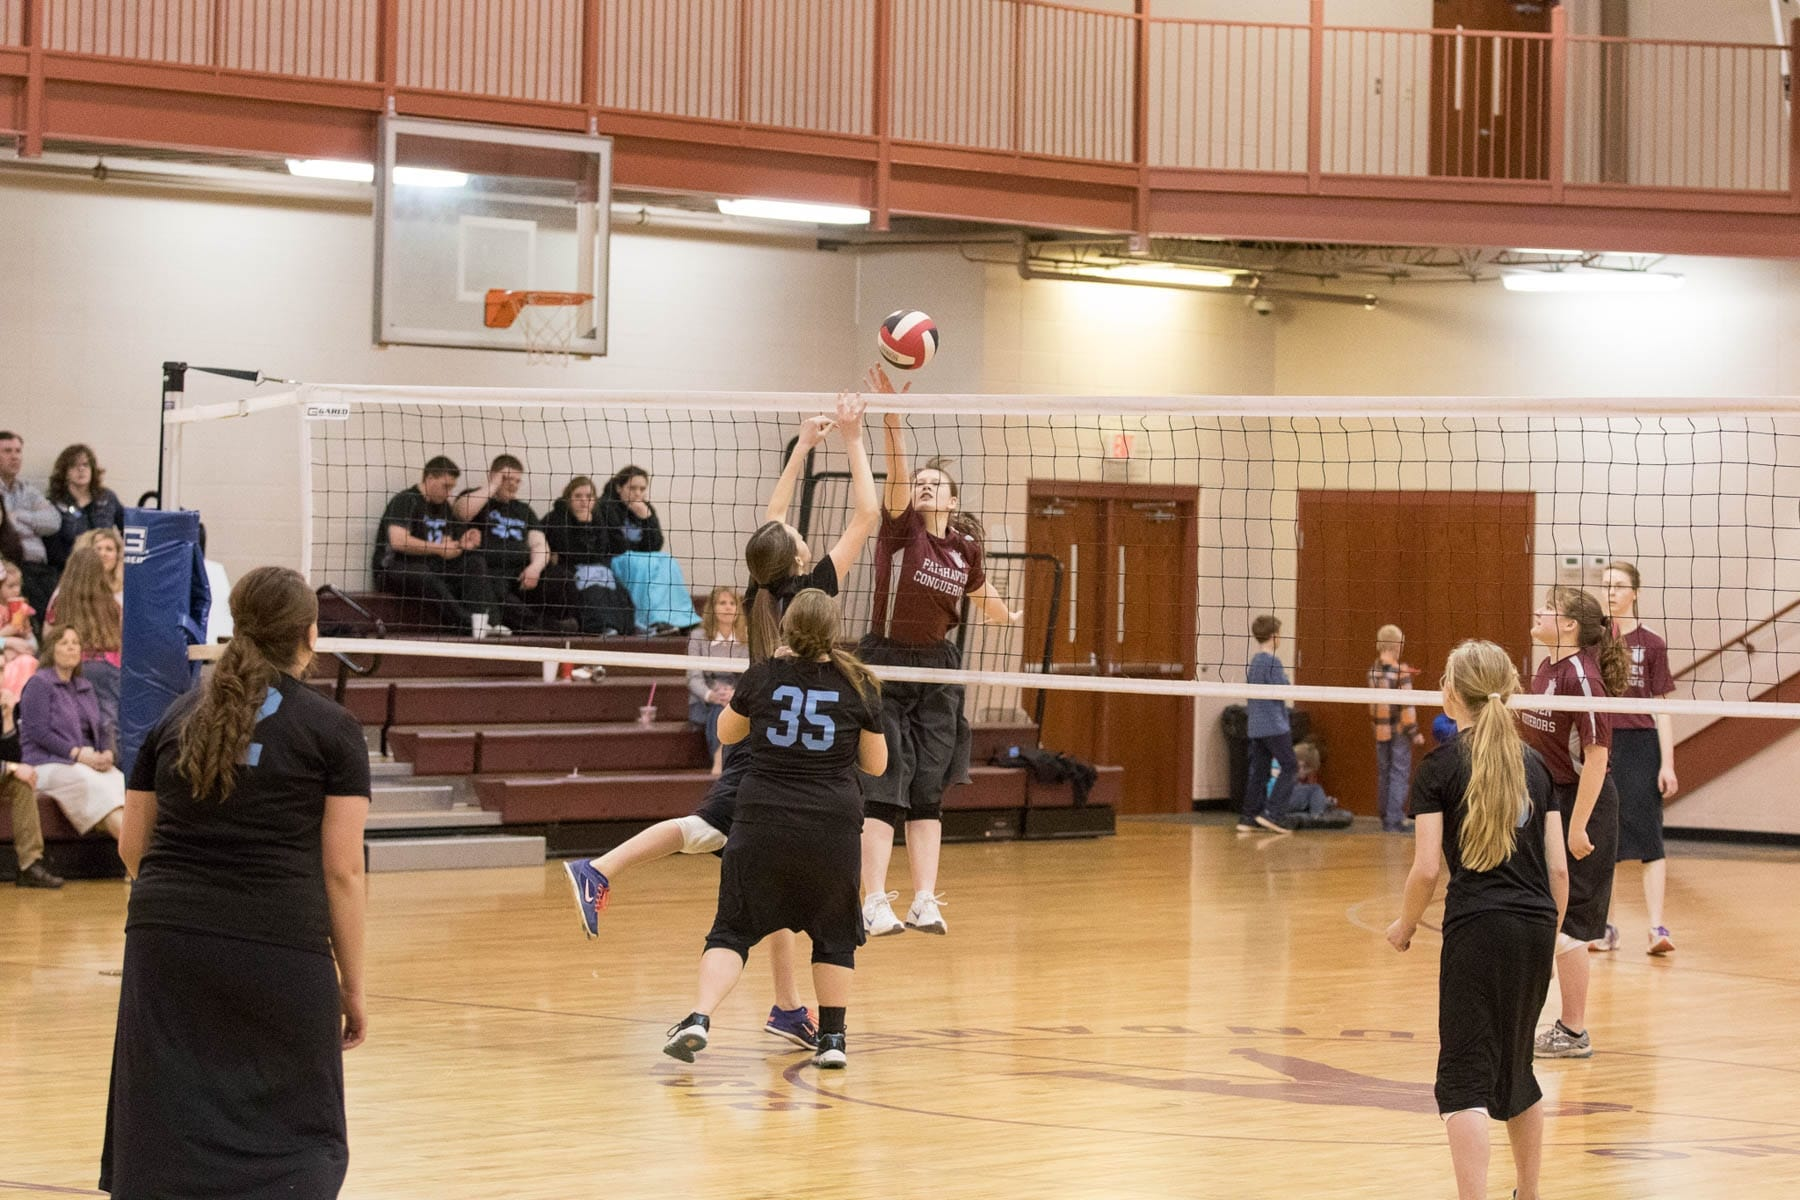 Fairhaven Baptist Academy Volleyball Basketball Tournament 2016 (38 of 40)